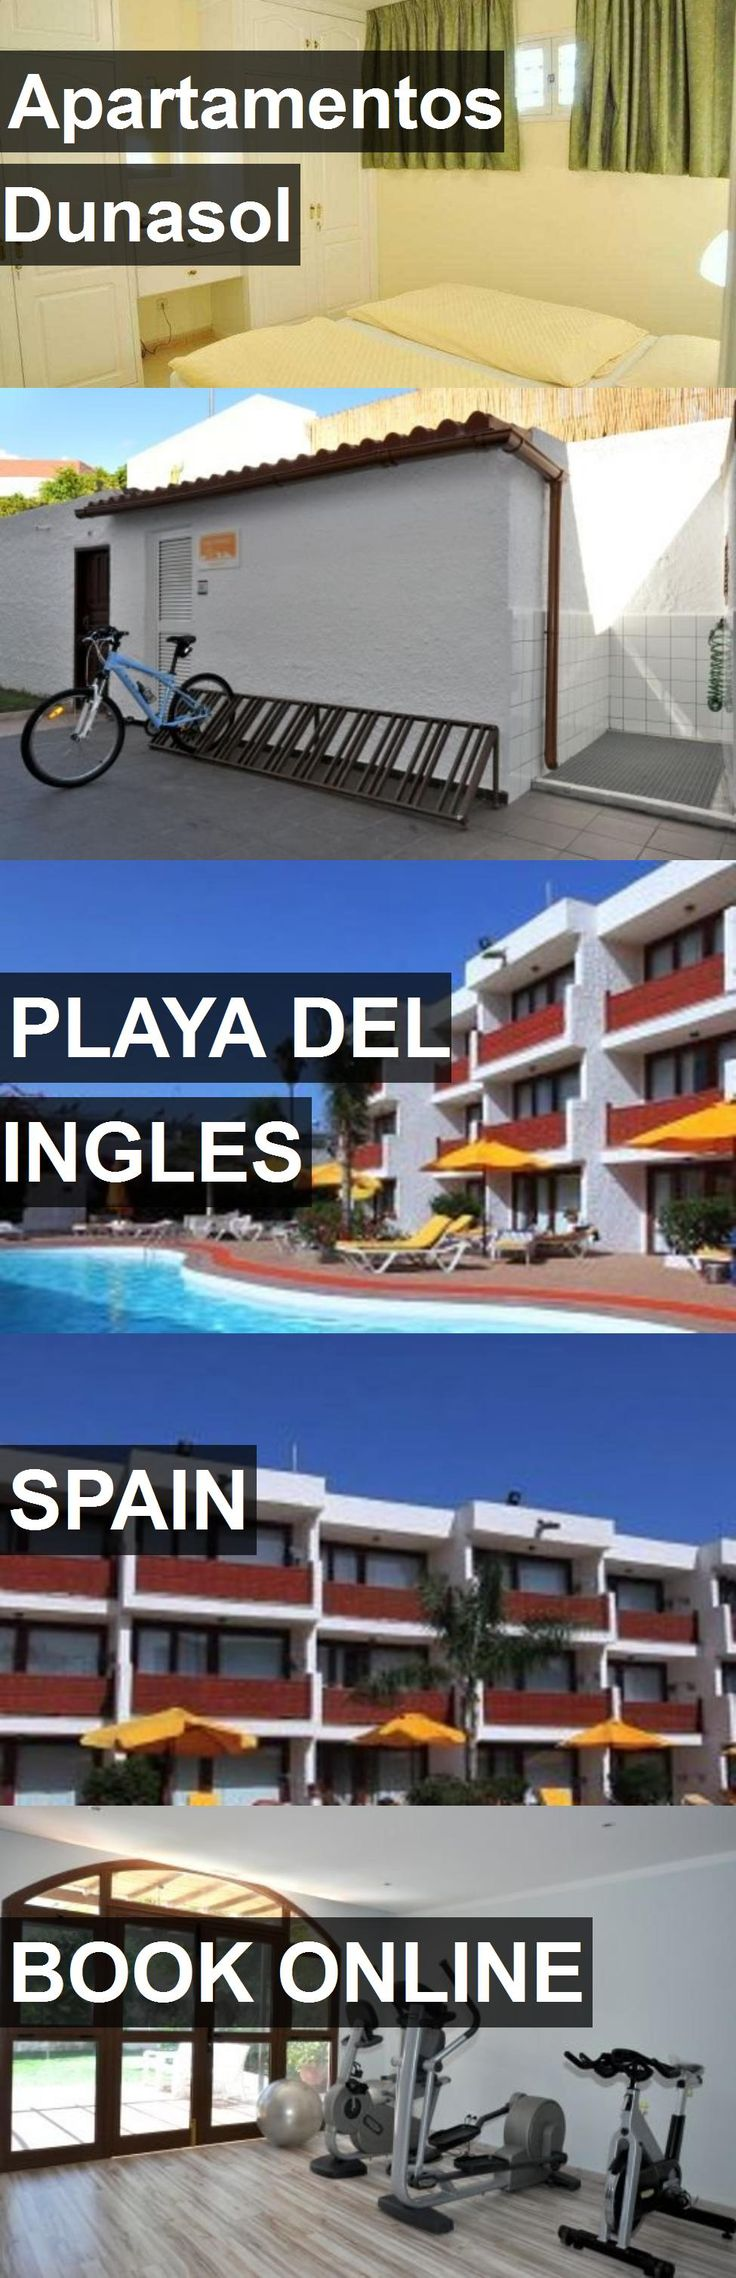 Hotel Apartamentos Dunasol in Playa del Ingles, Spain. For more information, photos, reviews and best prices please follow the link. #Spain #PlayadelIngles #hotel #travel #vacation